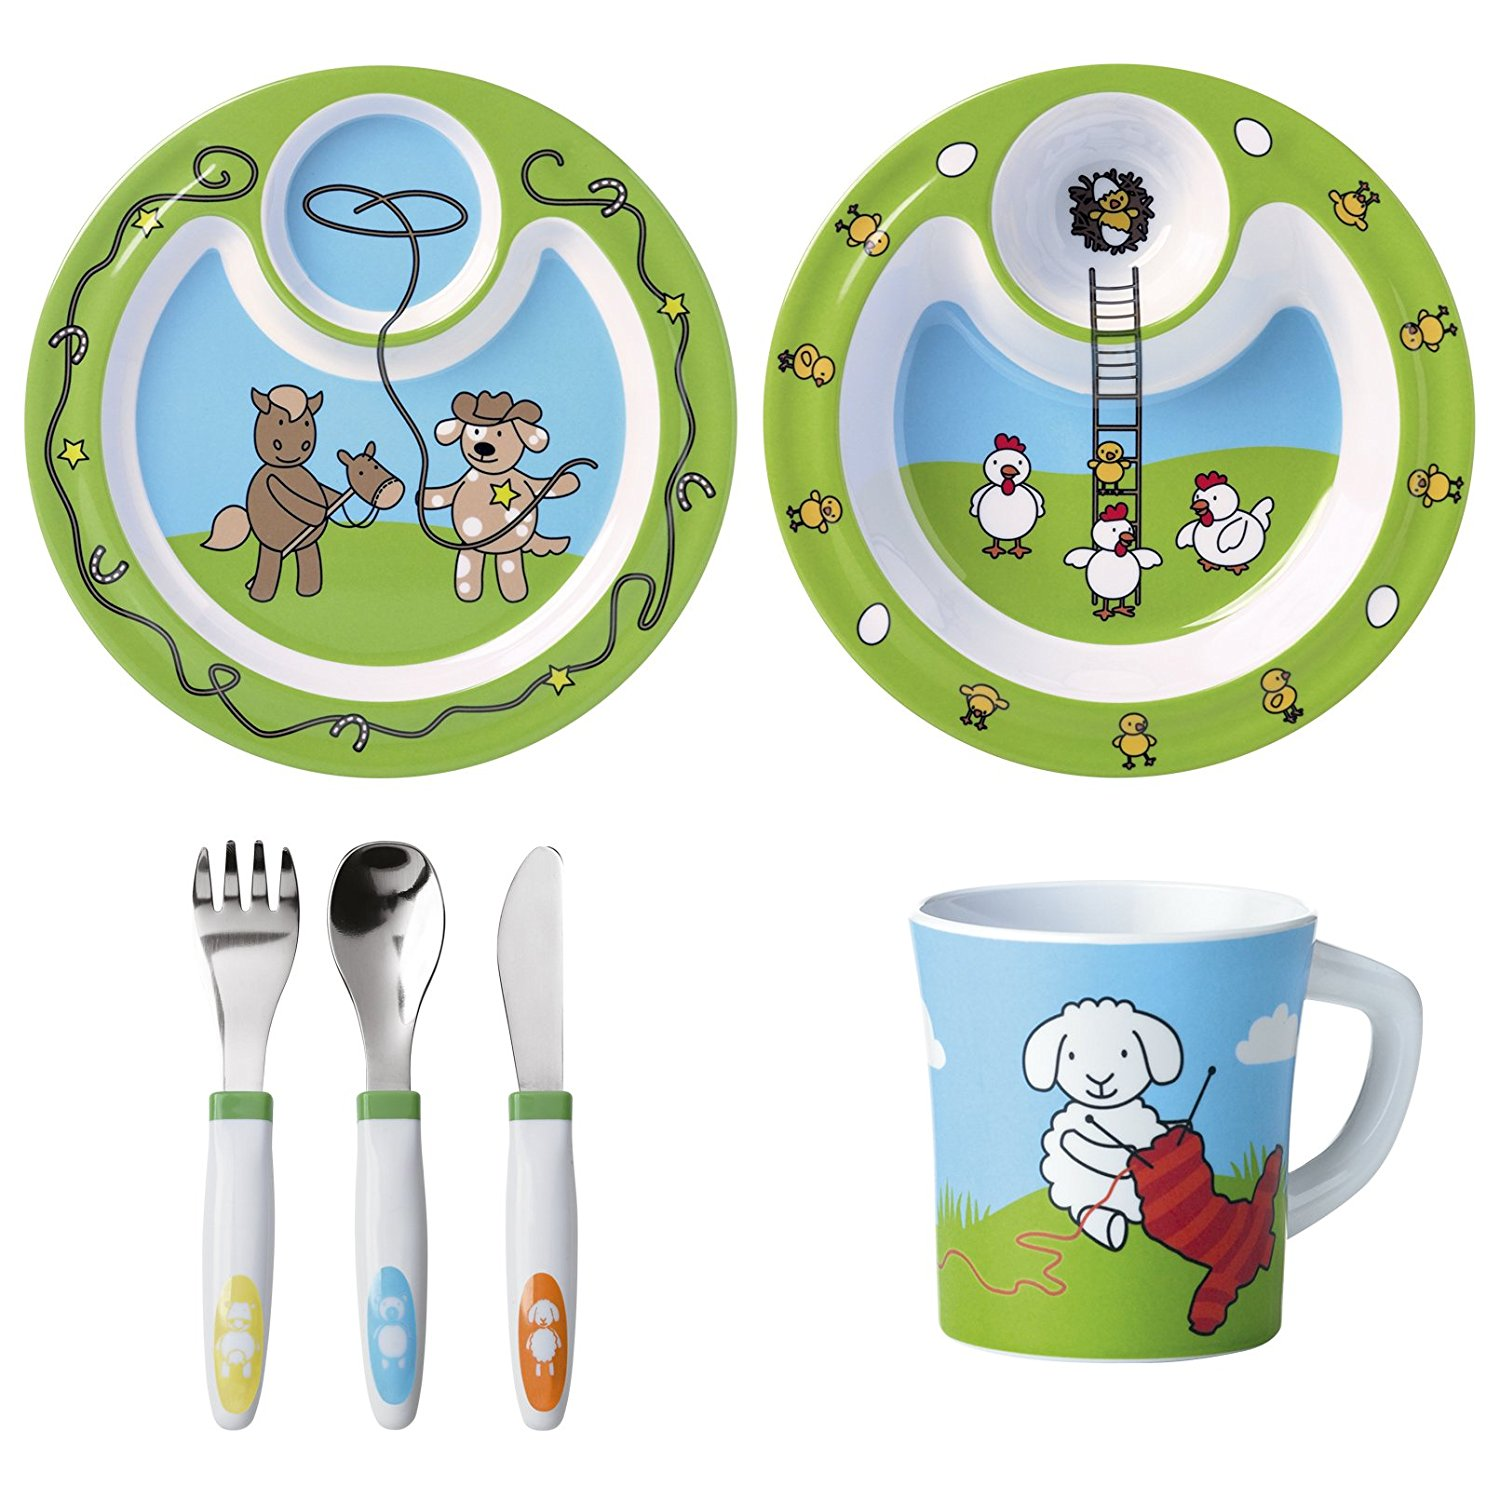 6-teiliges Kinderbesteck-Set von Emsa mit Farmtier-Motiven.